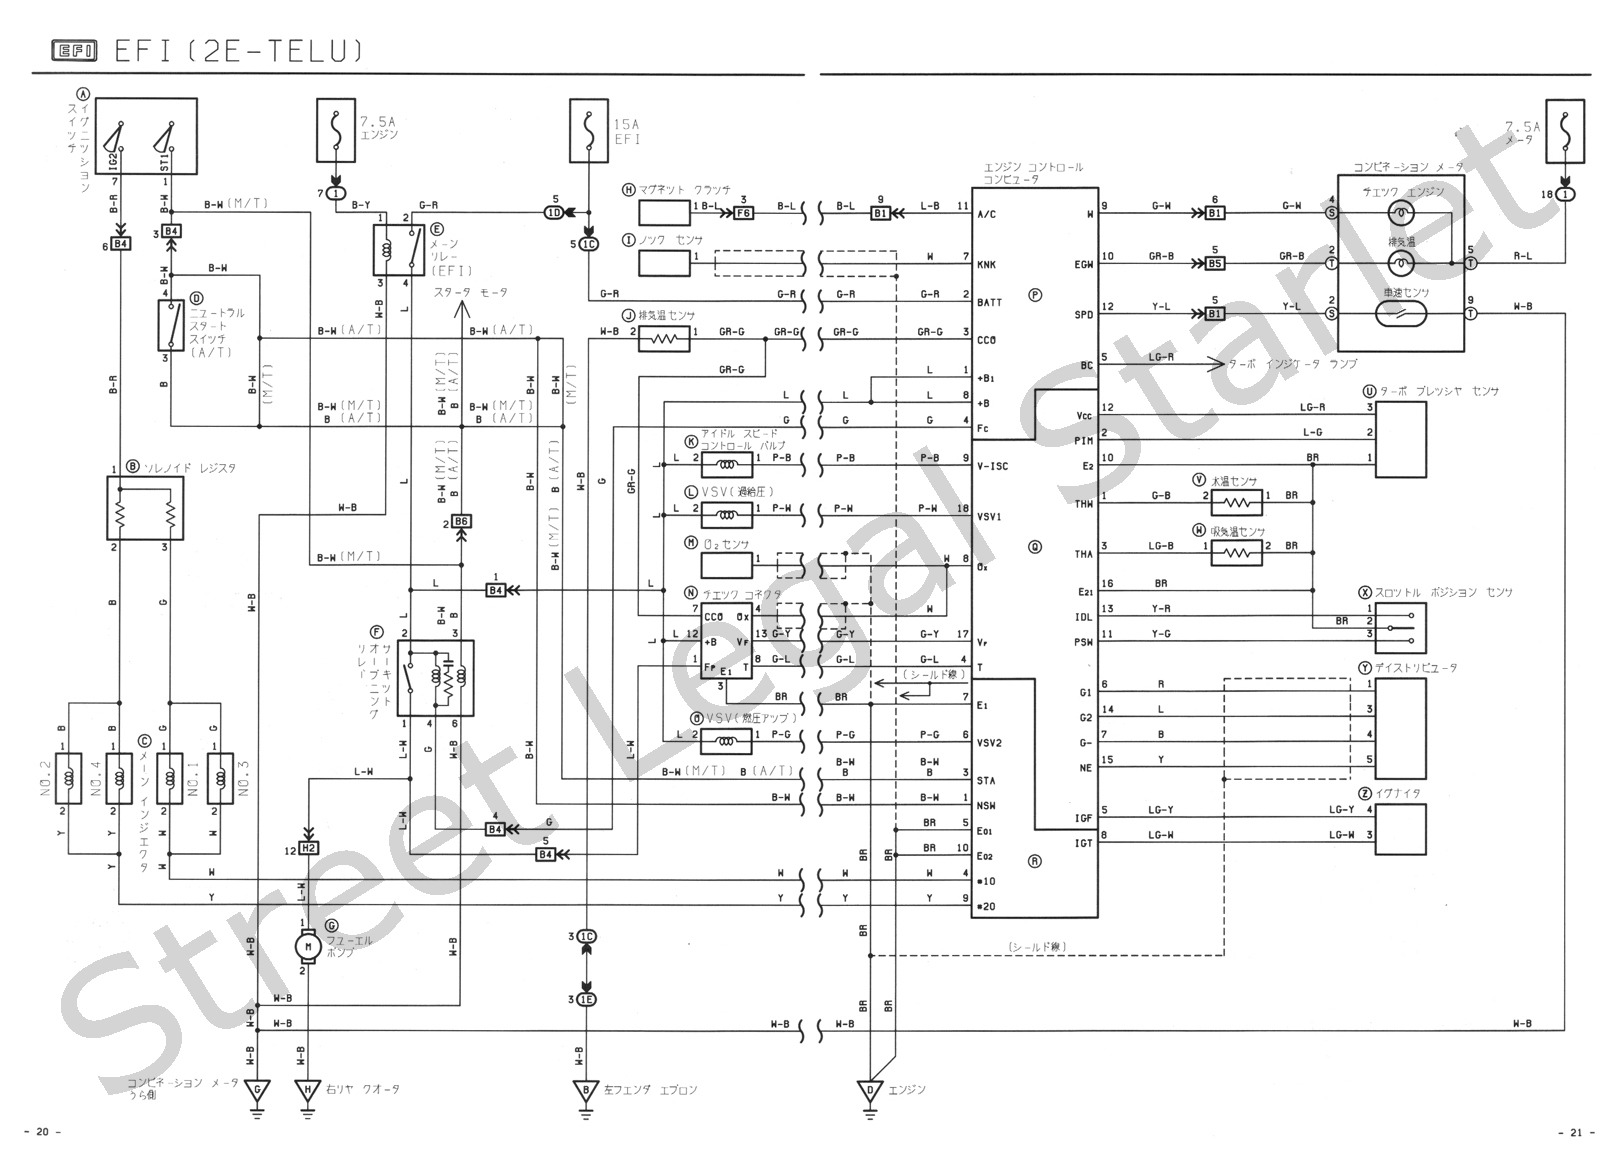 SLS EP71 Wiring diagram 2e telu?resize\\\\\\\=665%2C484 microtech lt8s wiring diagram snatch block diagrams \u2022 wiring becker europa wiring diagram at creativeand.co